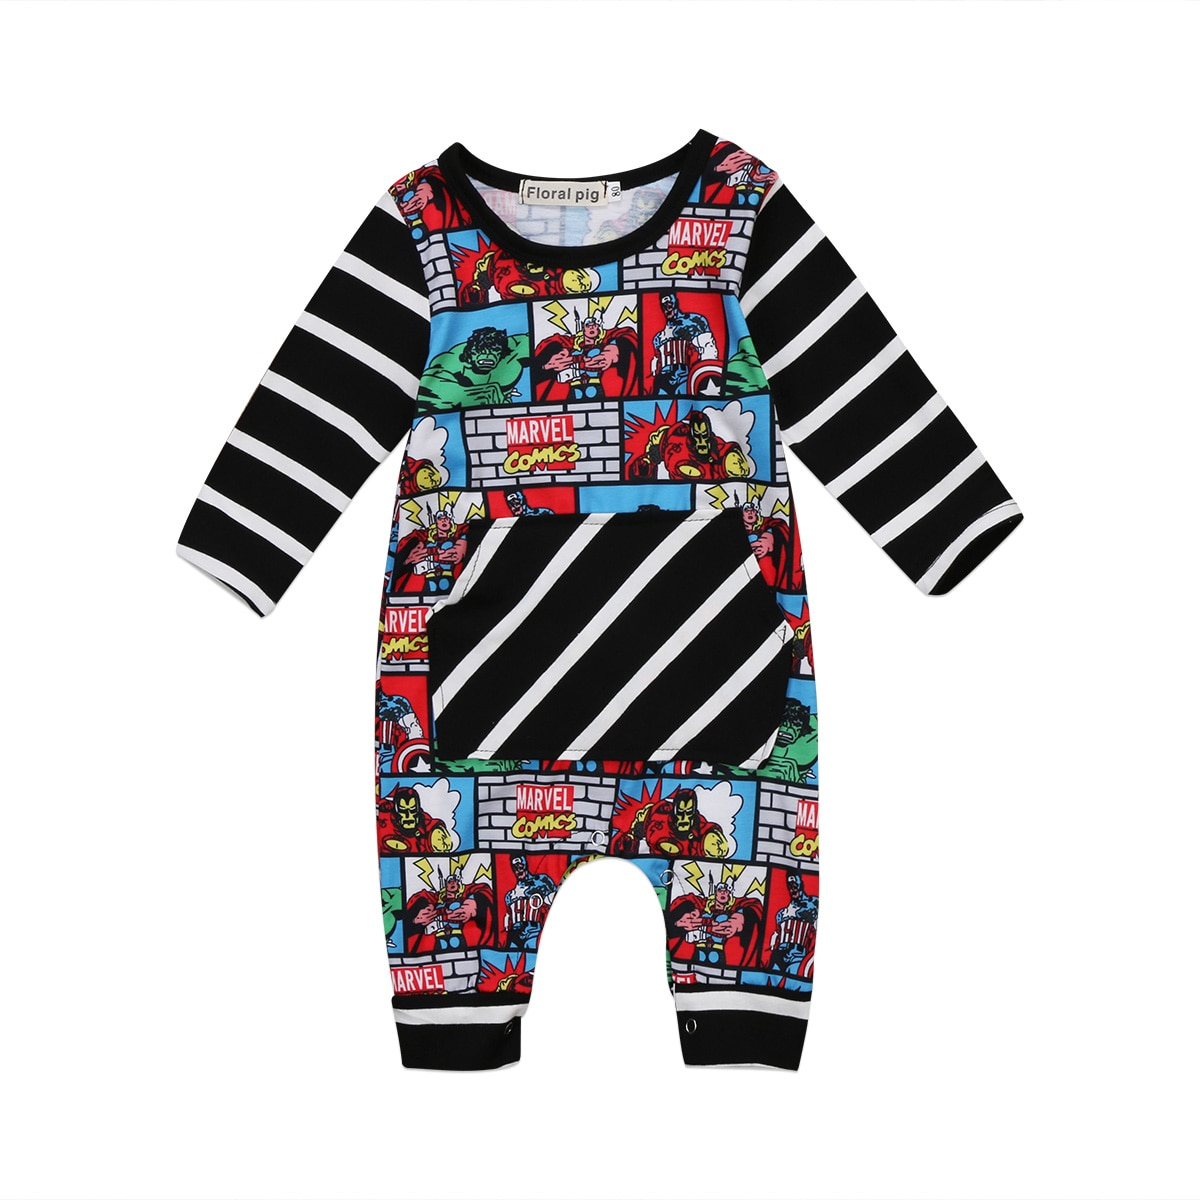 Infant Newborn Baby Clothing Boys Long Jumpsuit Rompers Cute Baby Cotton Autumn Clothes Outfits cute newborn baby clothing long sleeve cotton solid baby rompers peter pan collar girls boys clothes jumpsuit infant costumes